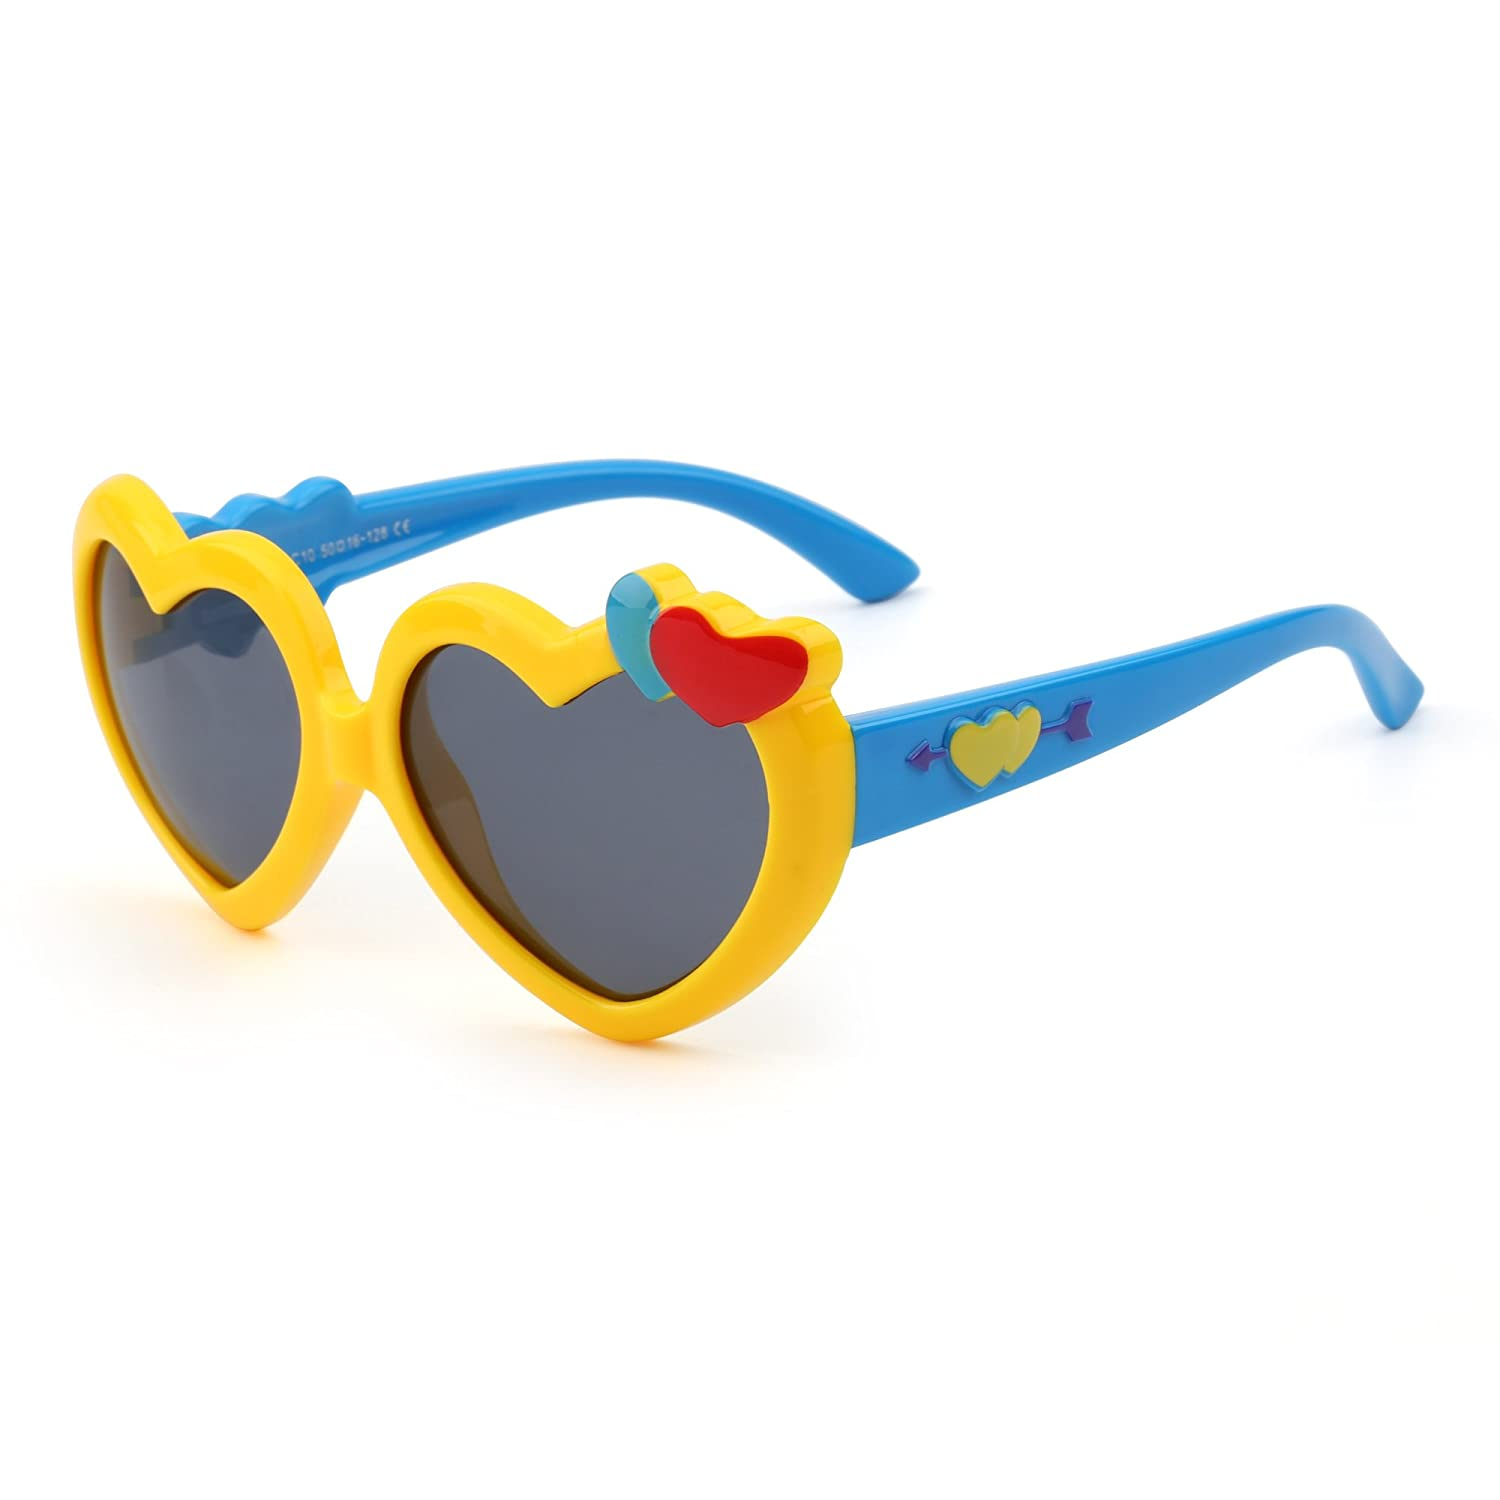 Kids Heart Polarized Cute Sunglasses Flexible Rubber Children Girls Age 3-12 T1516C4